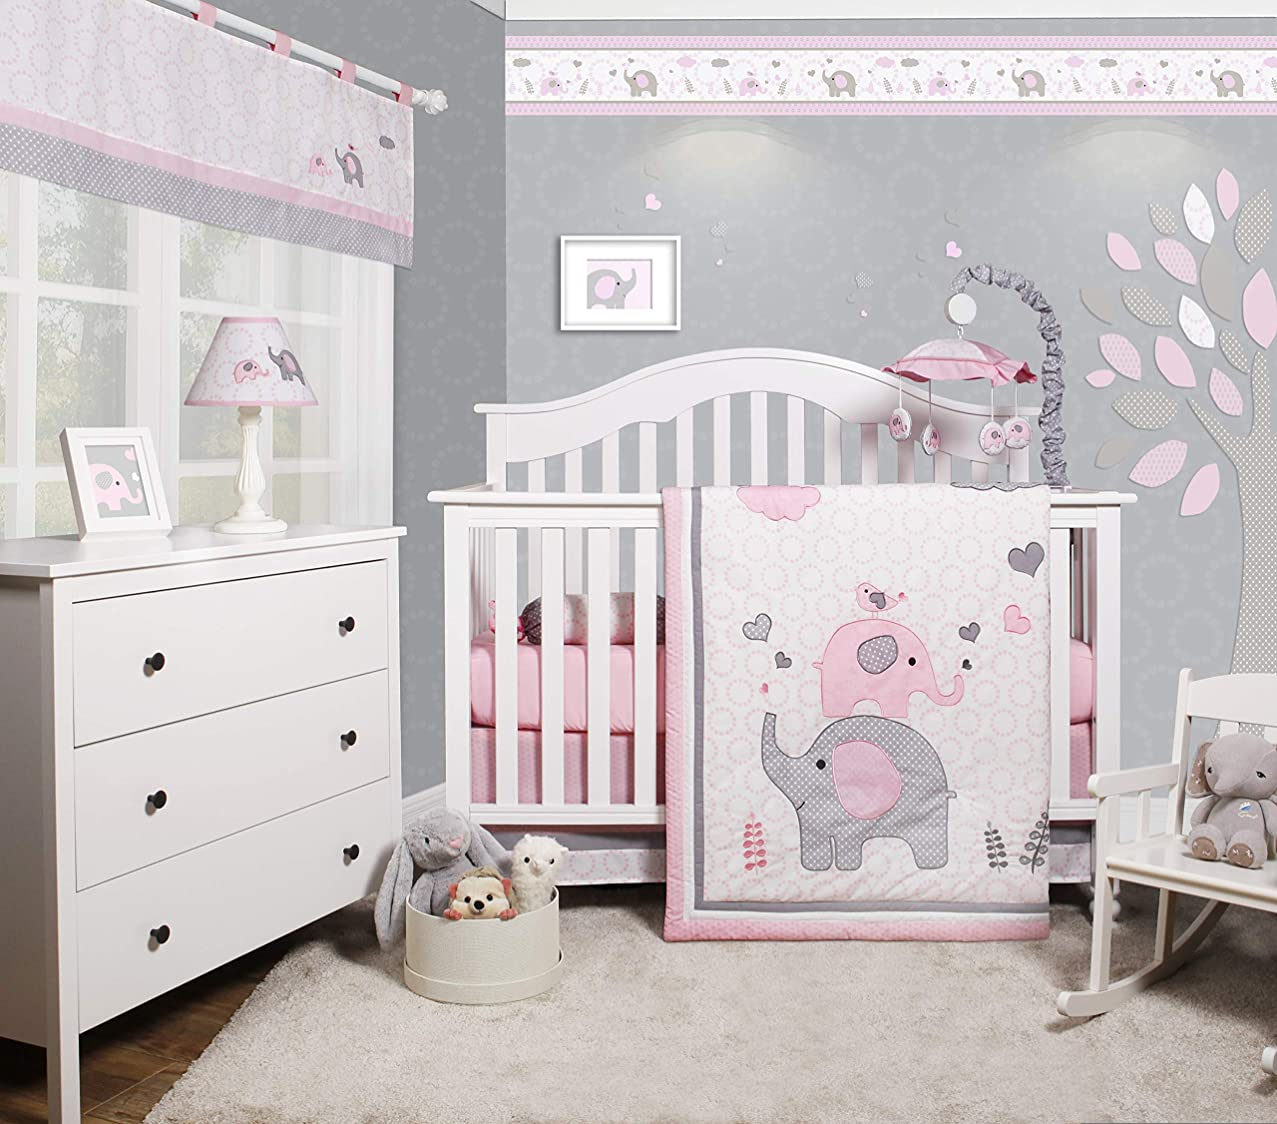 OurBabies Pink Grey Elephant 6 Piece Baby Girl Nursery Crib Bedding Set